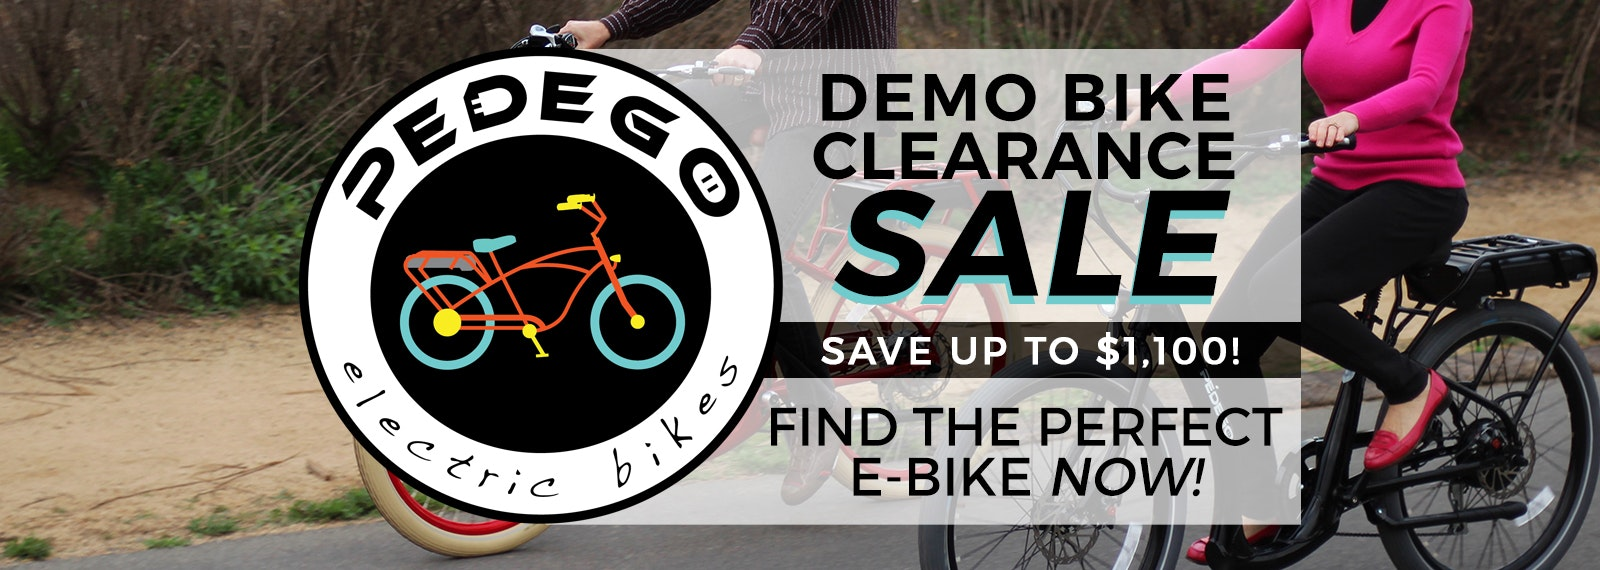 Pedego Demo Fleet